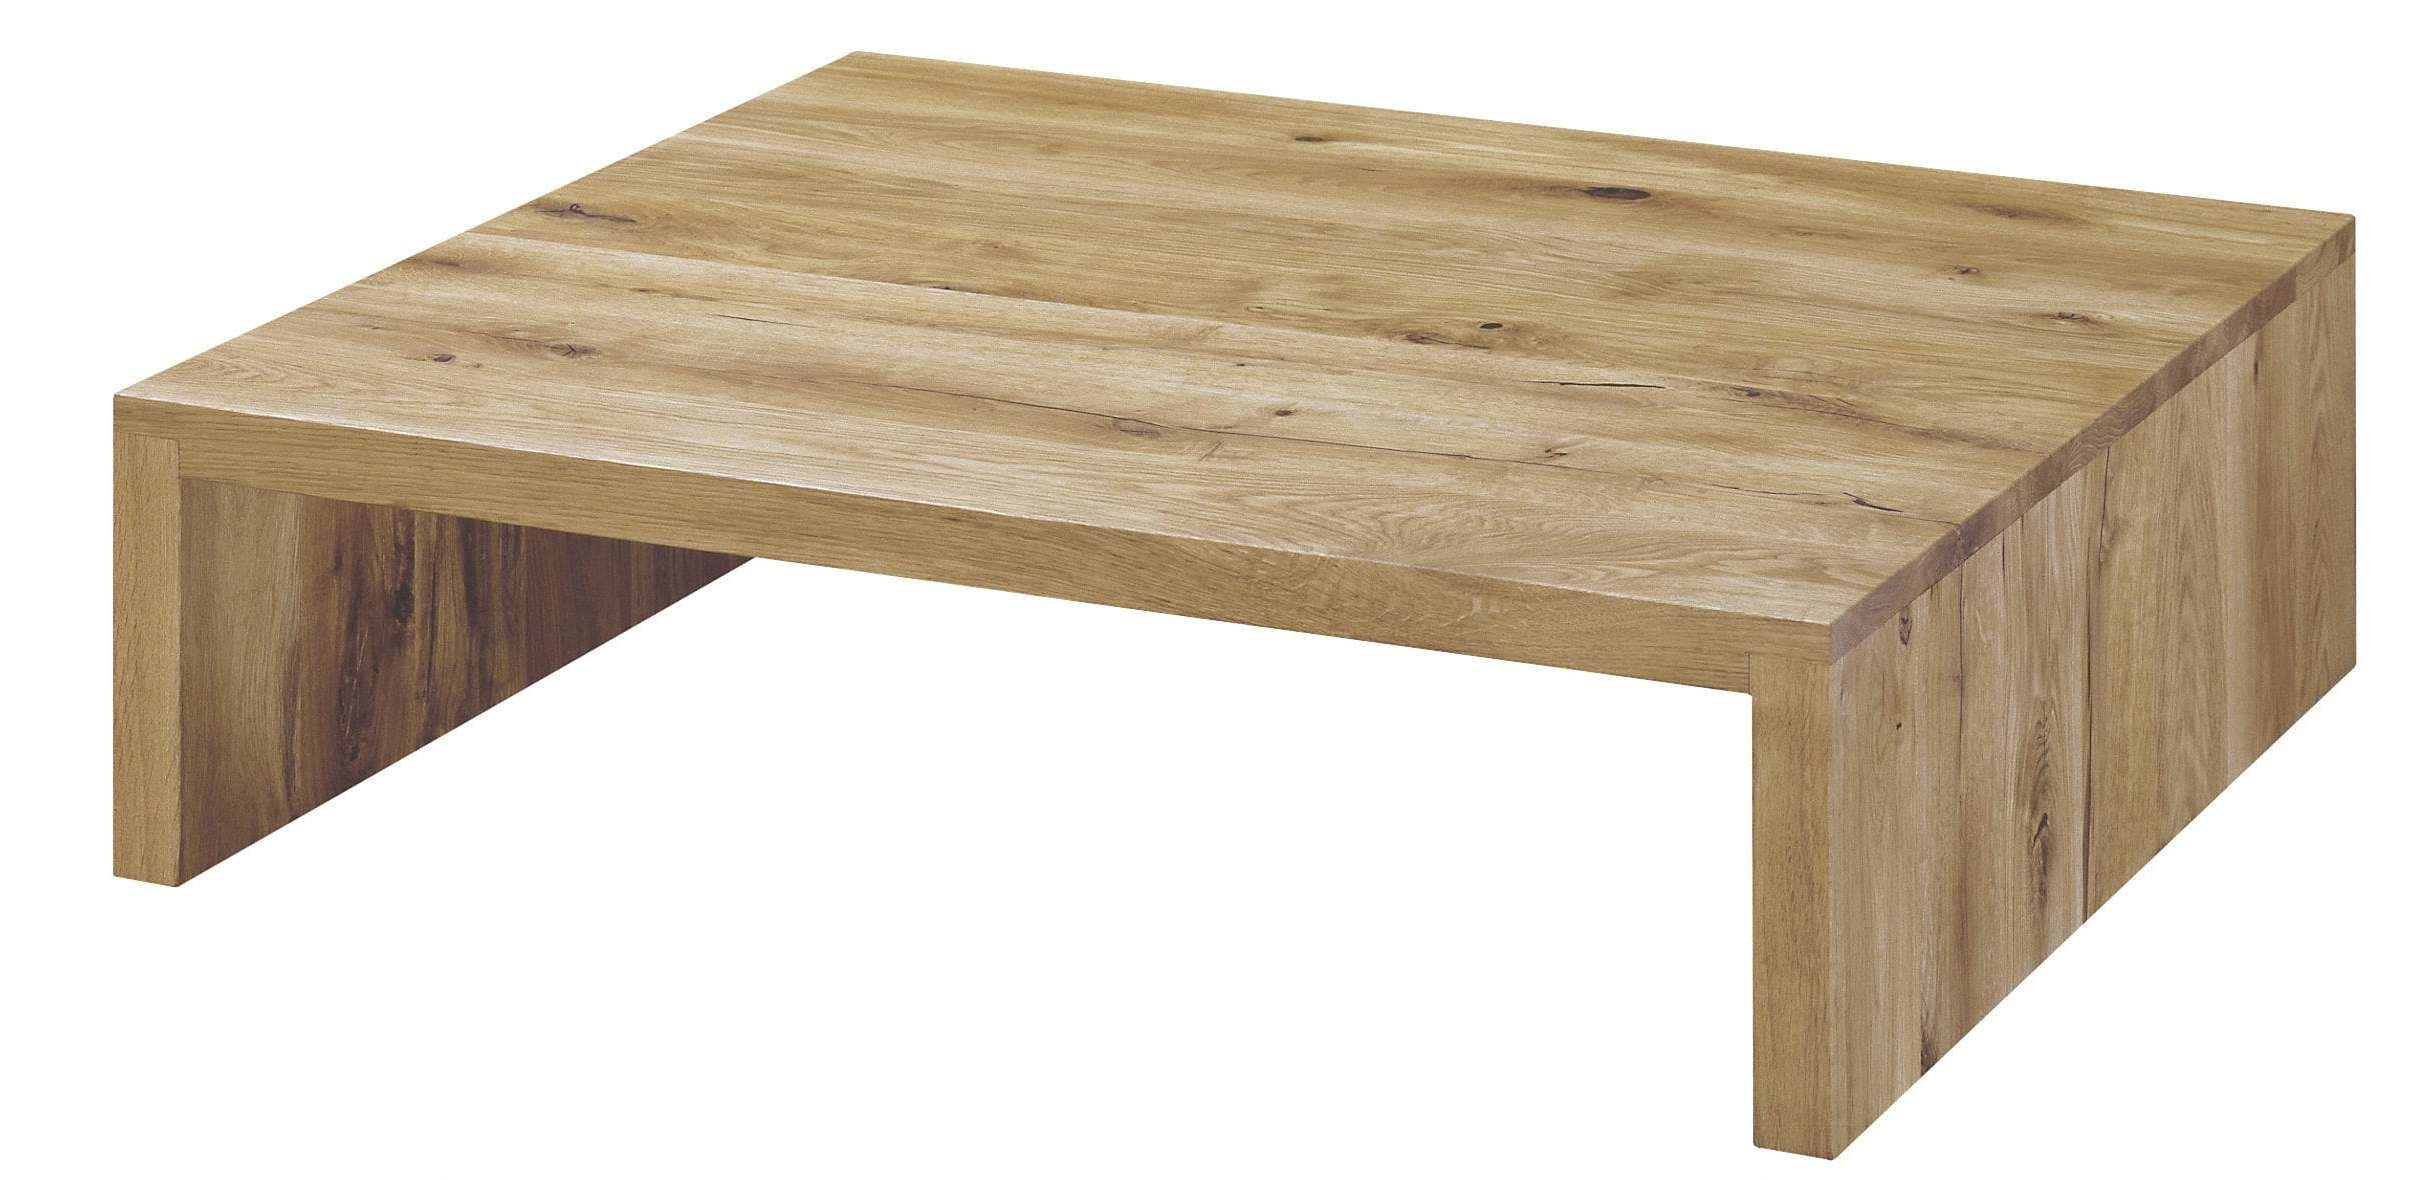 Widely Used Contemporary Oak Coffee Table In Contemporary Coffee Table / Oak  / Oiled Wood /